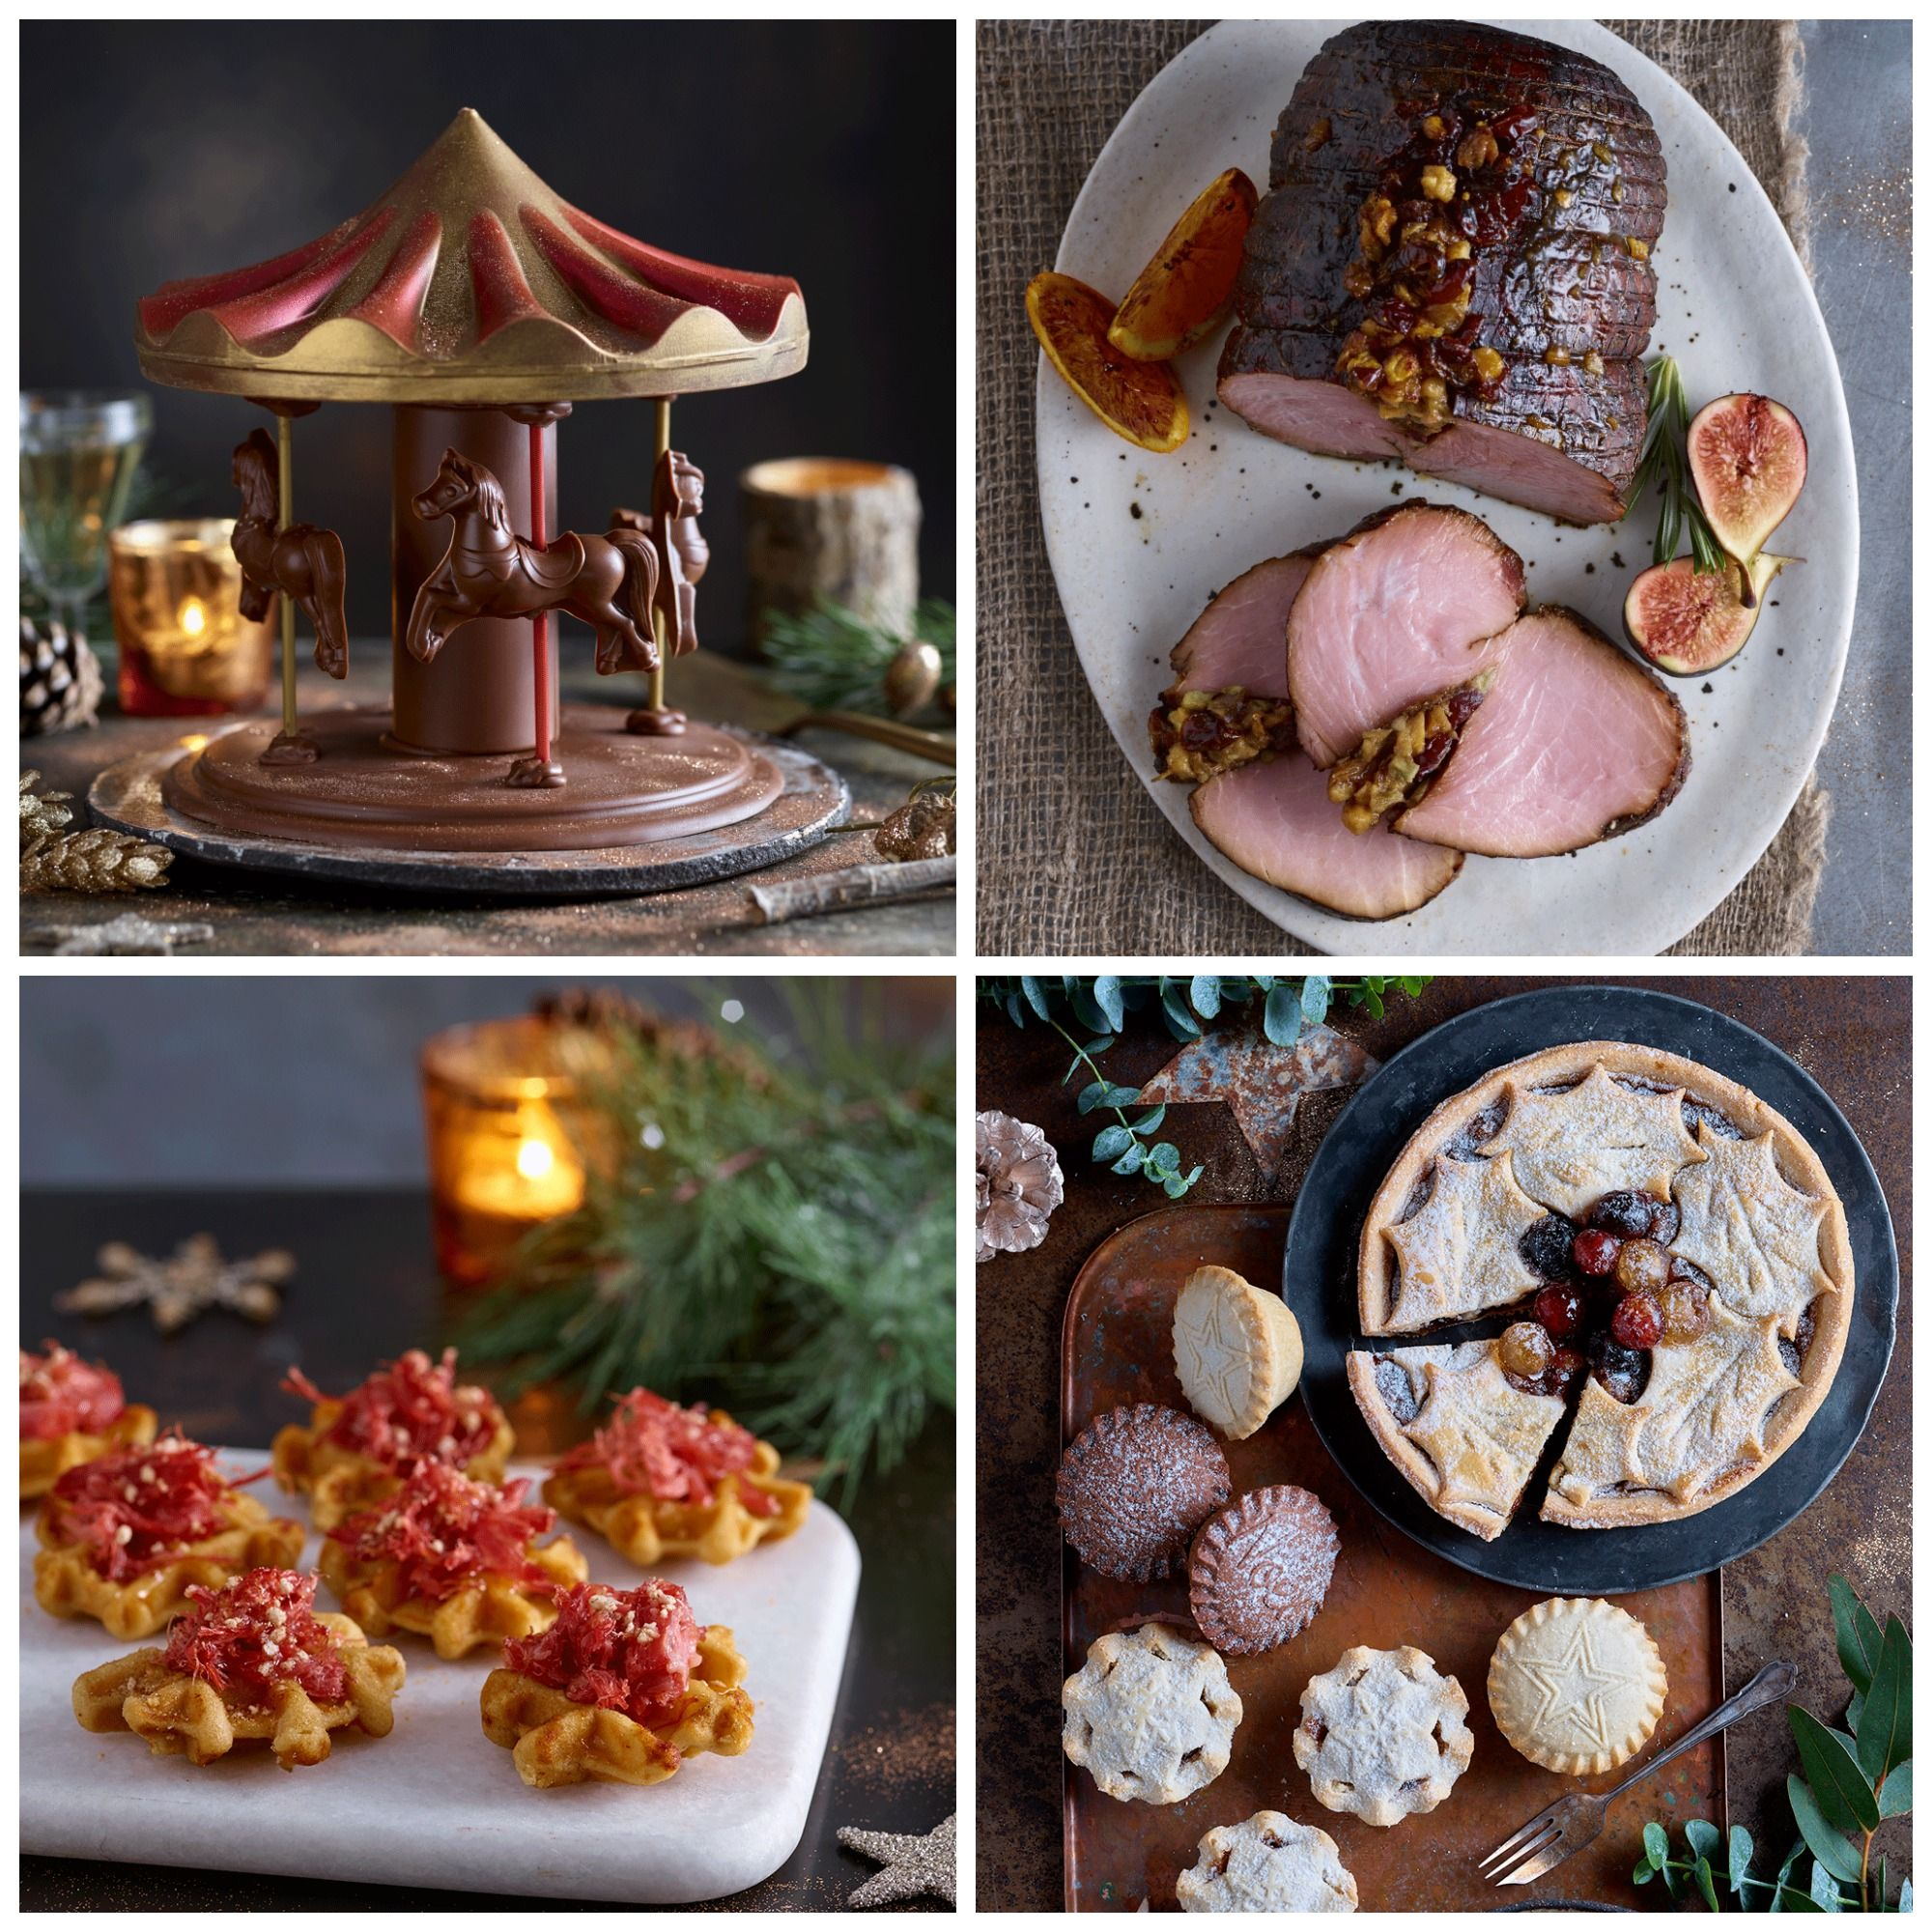 Aldi Christmas Food Aldi S Christmas Food And Drink Offering This